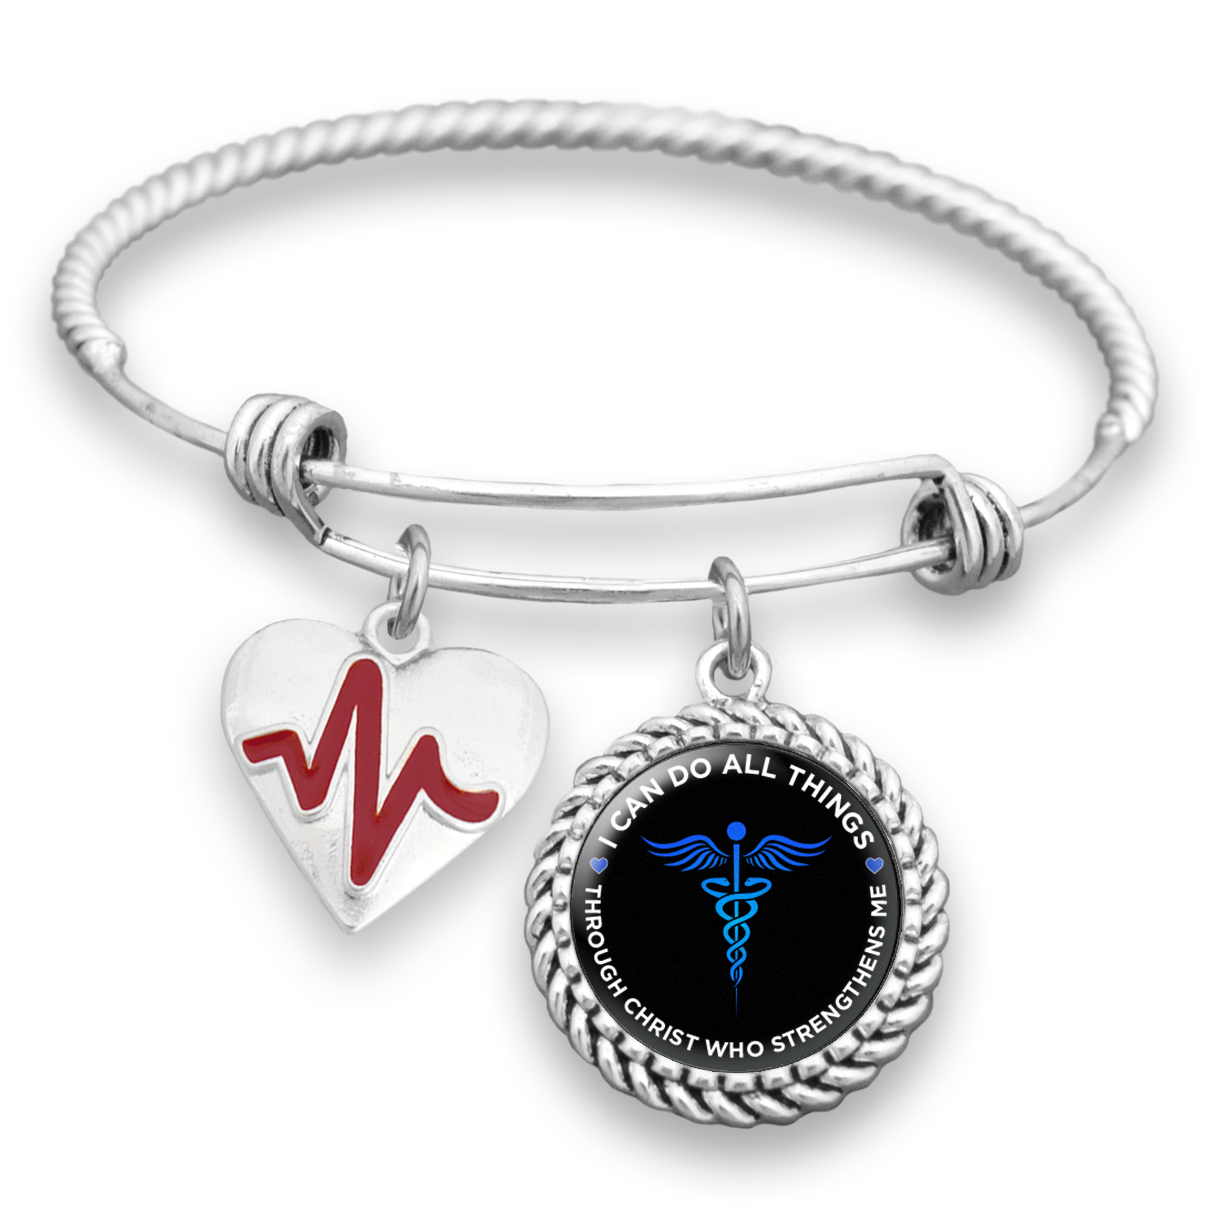 Can Do All Things Nurse Charm Bracelet